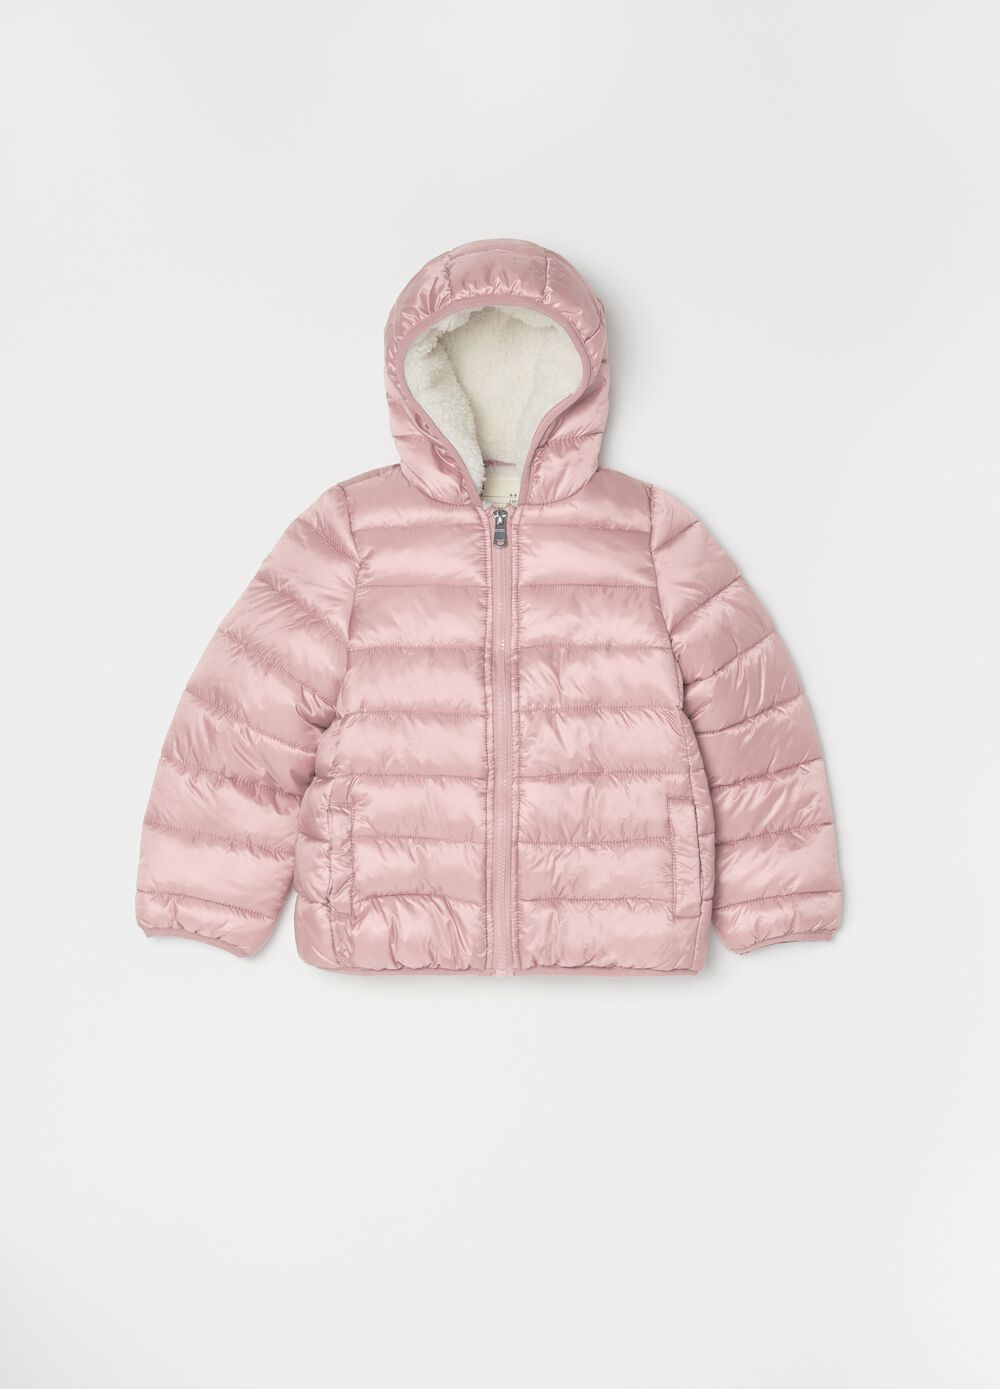 Padded and quilted jacket with pockets